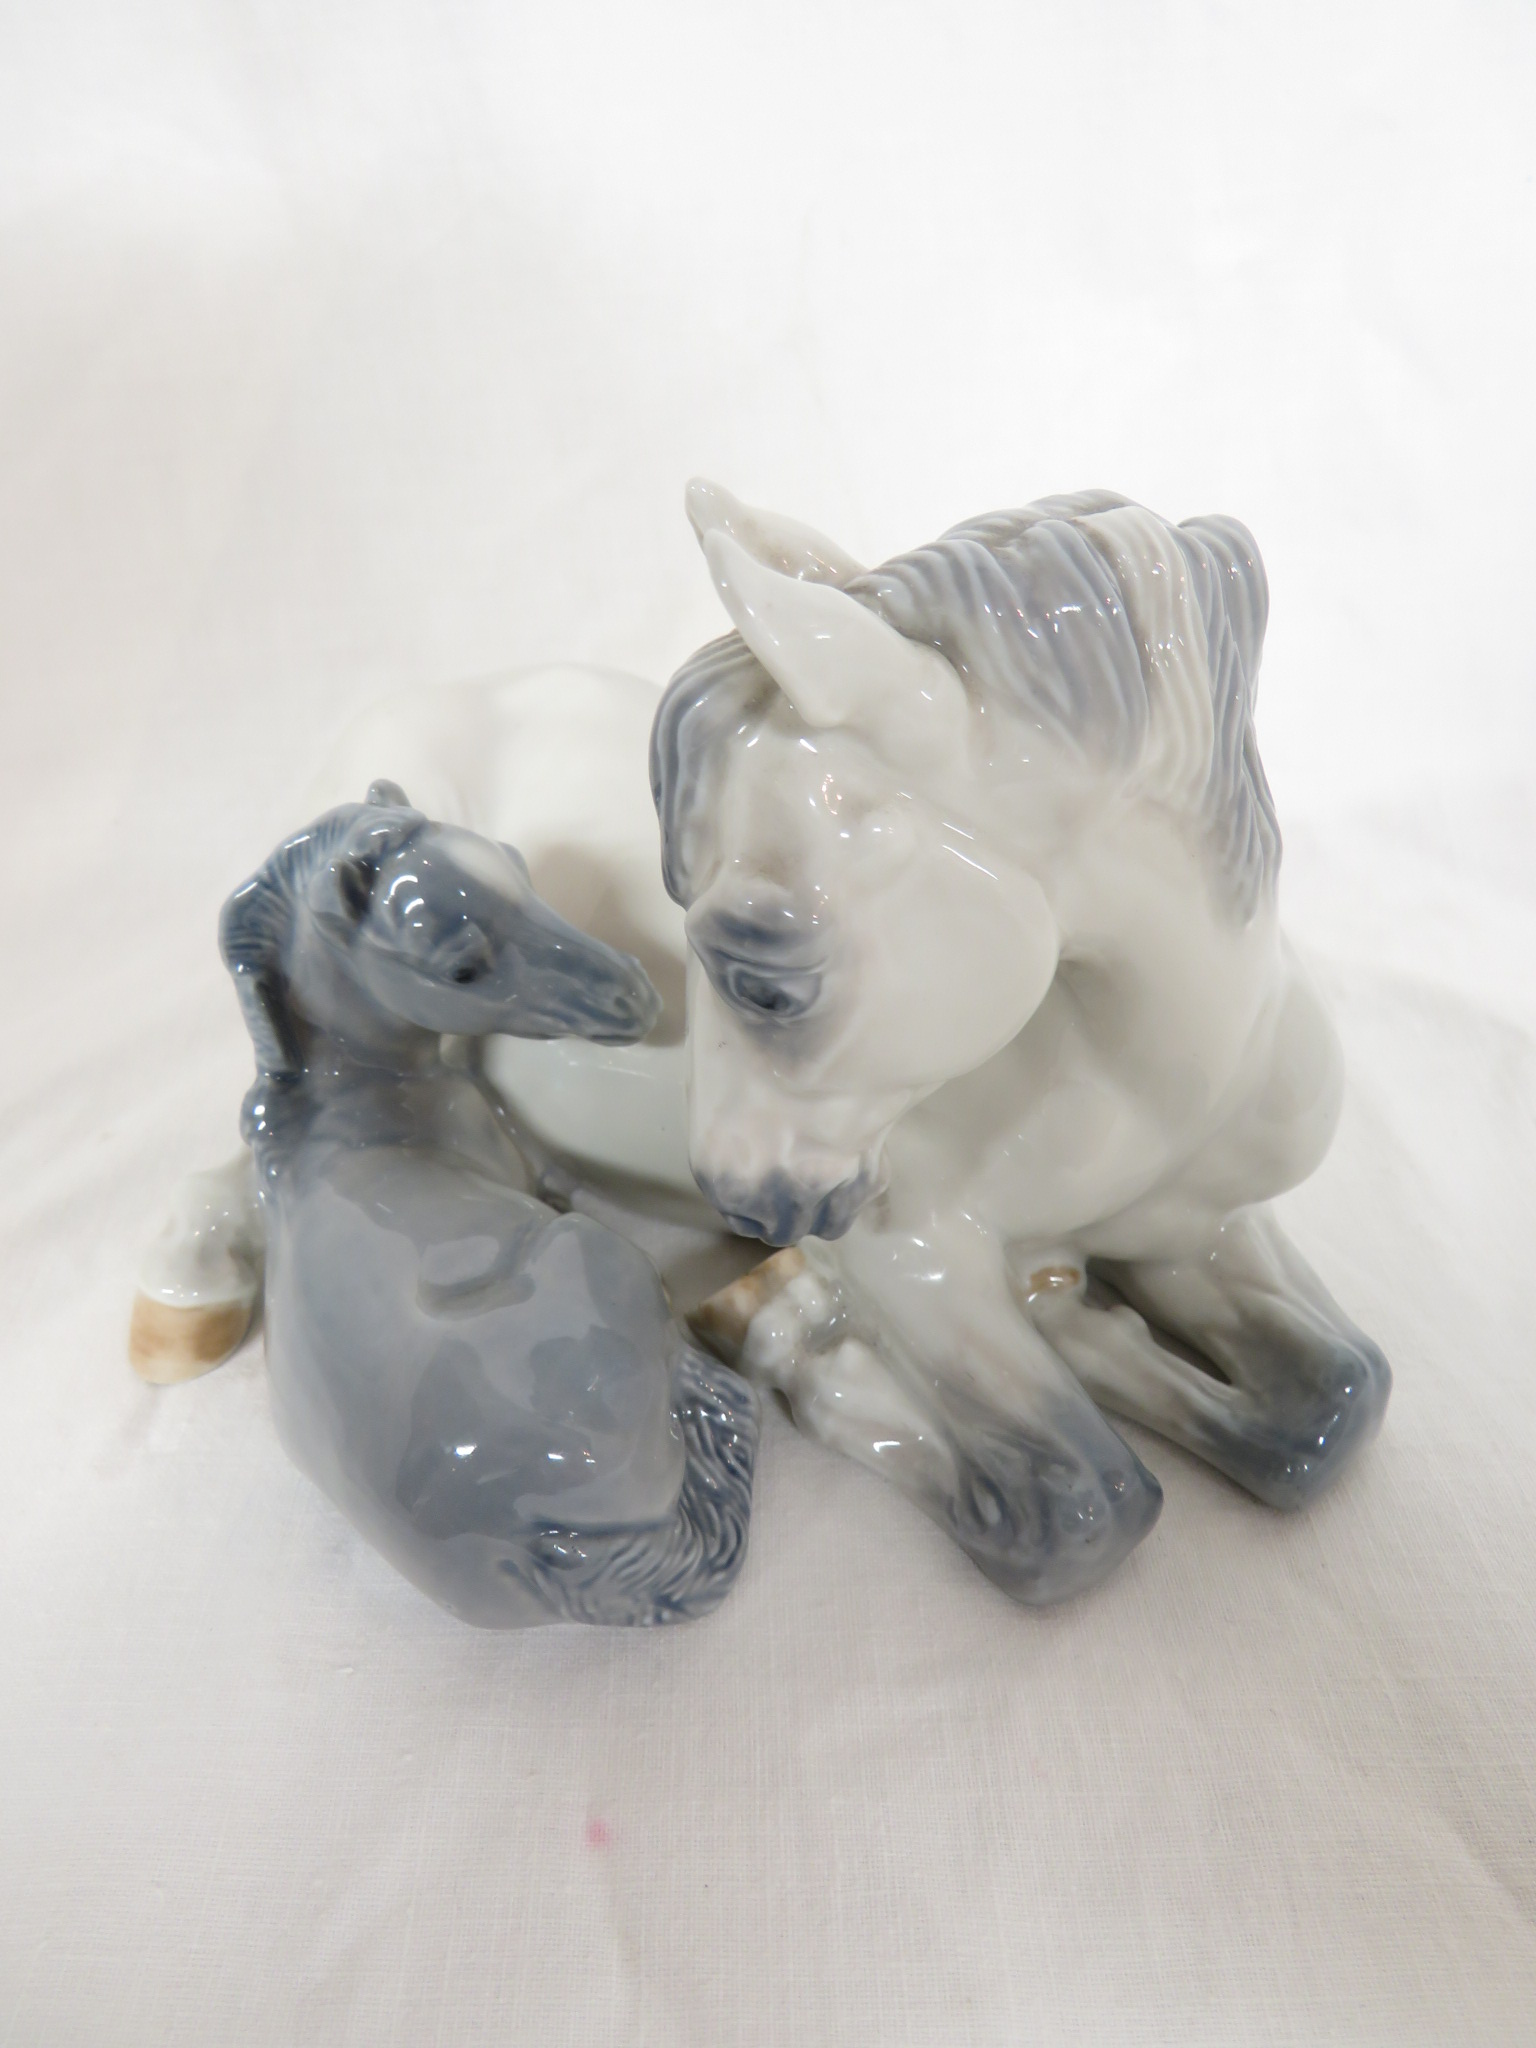 Lot 79 - Royal Copenhagen porcelain figural group of mare and foal, numbered 4698, (length 18cm, height